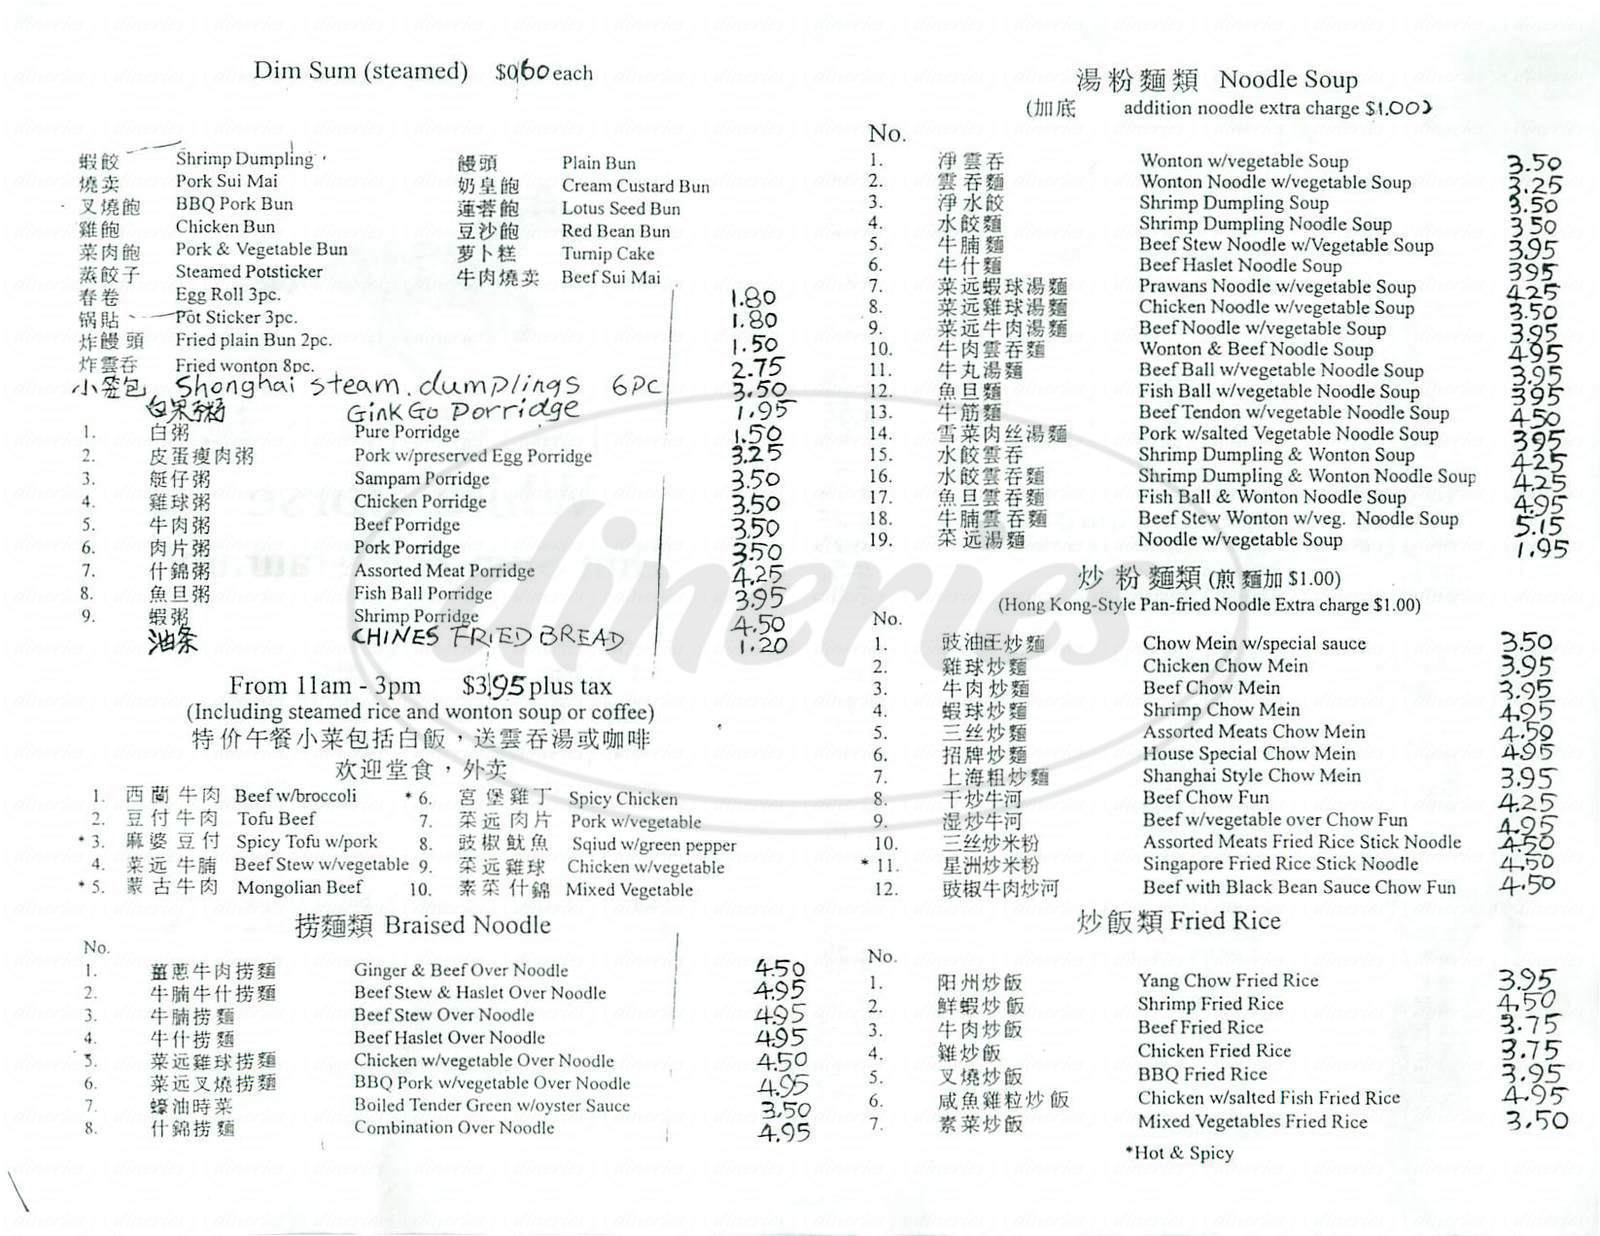 menu for White Horse Dim Sum